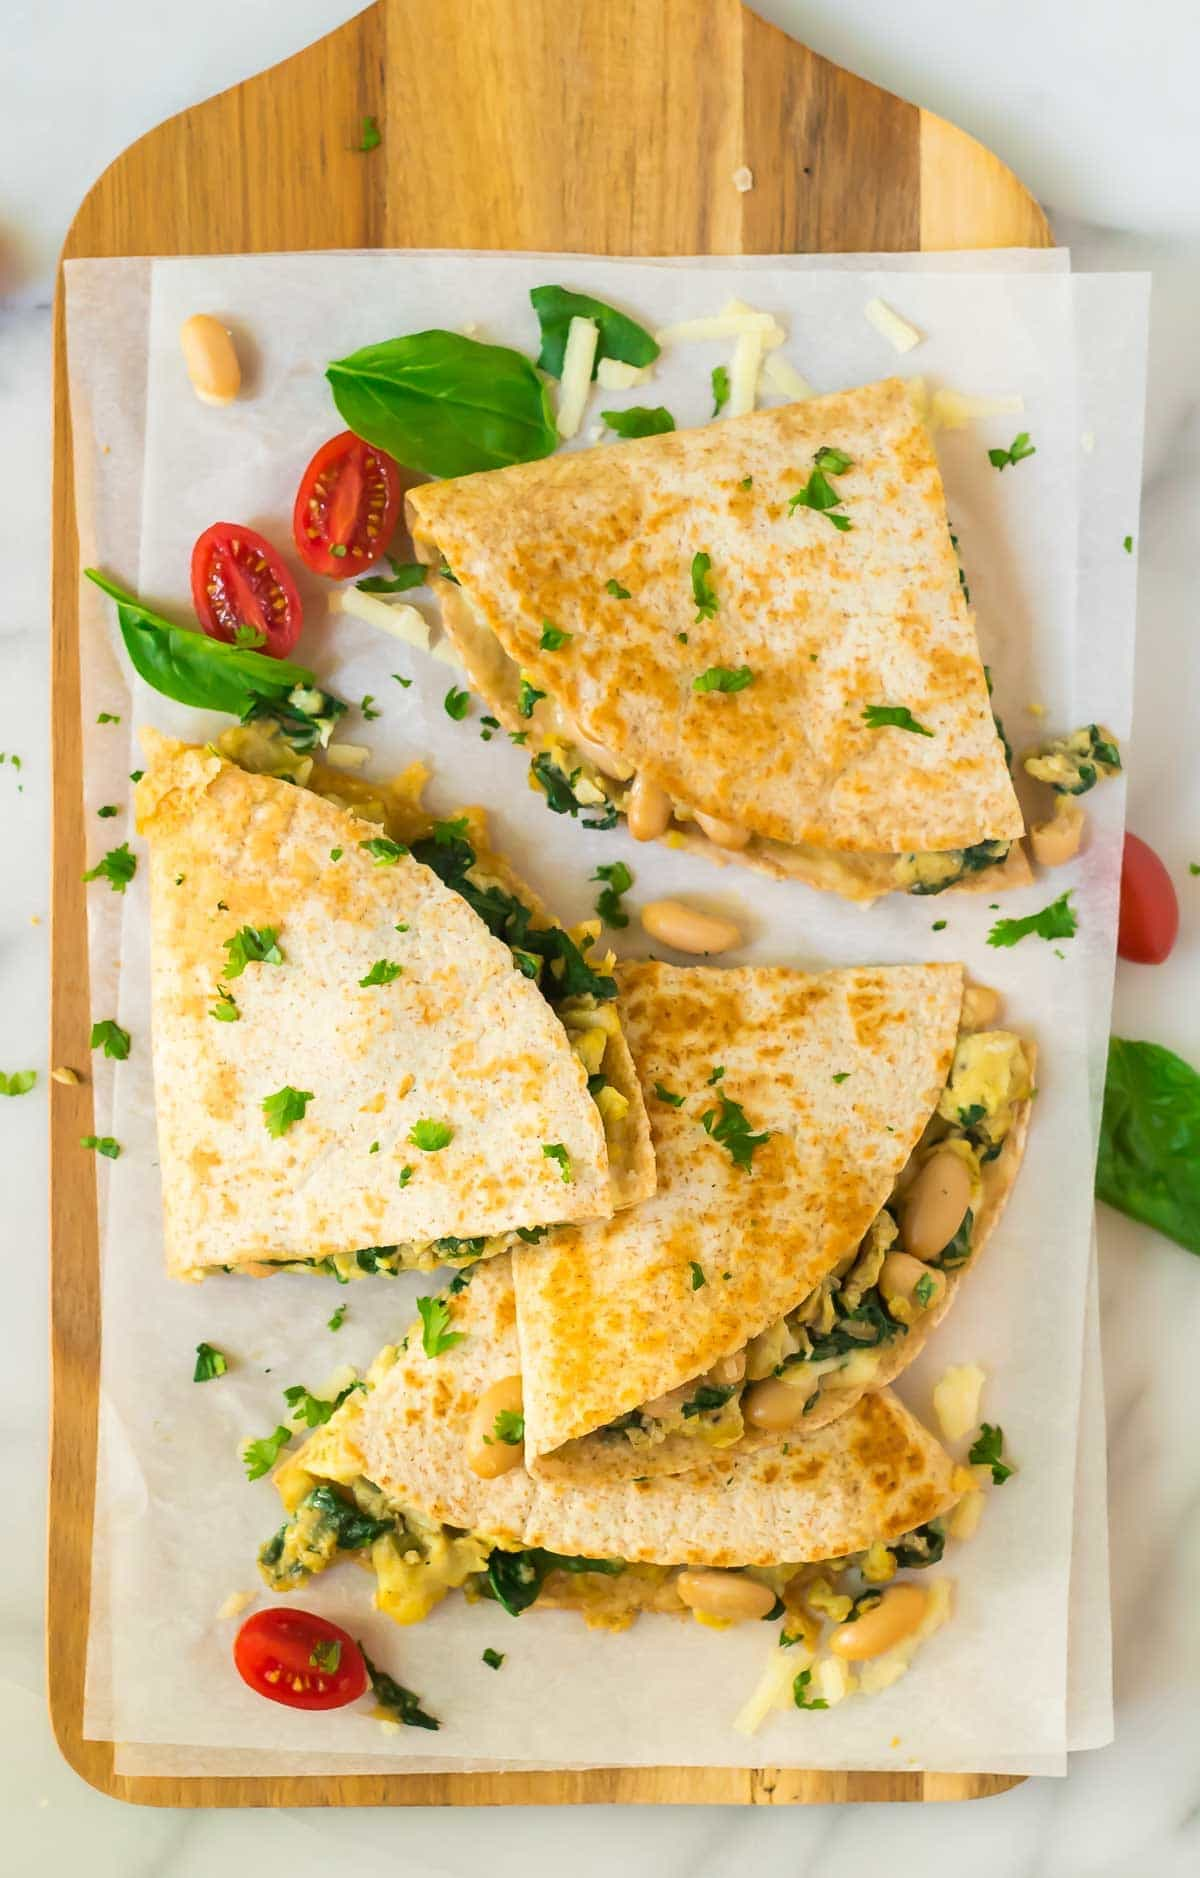 Freezer Breakfast Quesadilla with eggs, spinach, cheese, and beans on a wood serving board and parchment paper